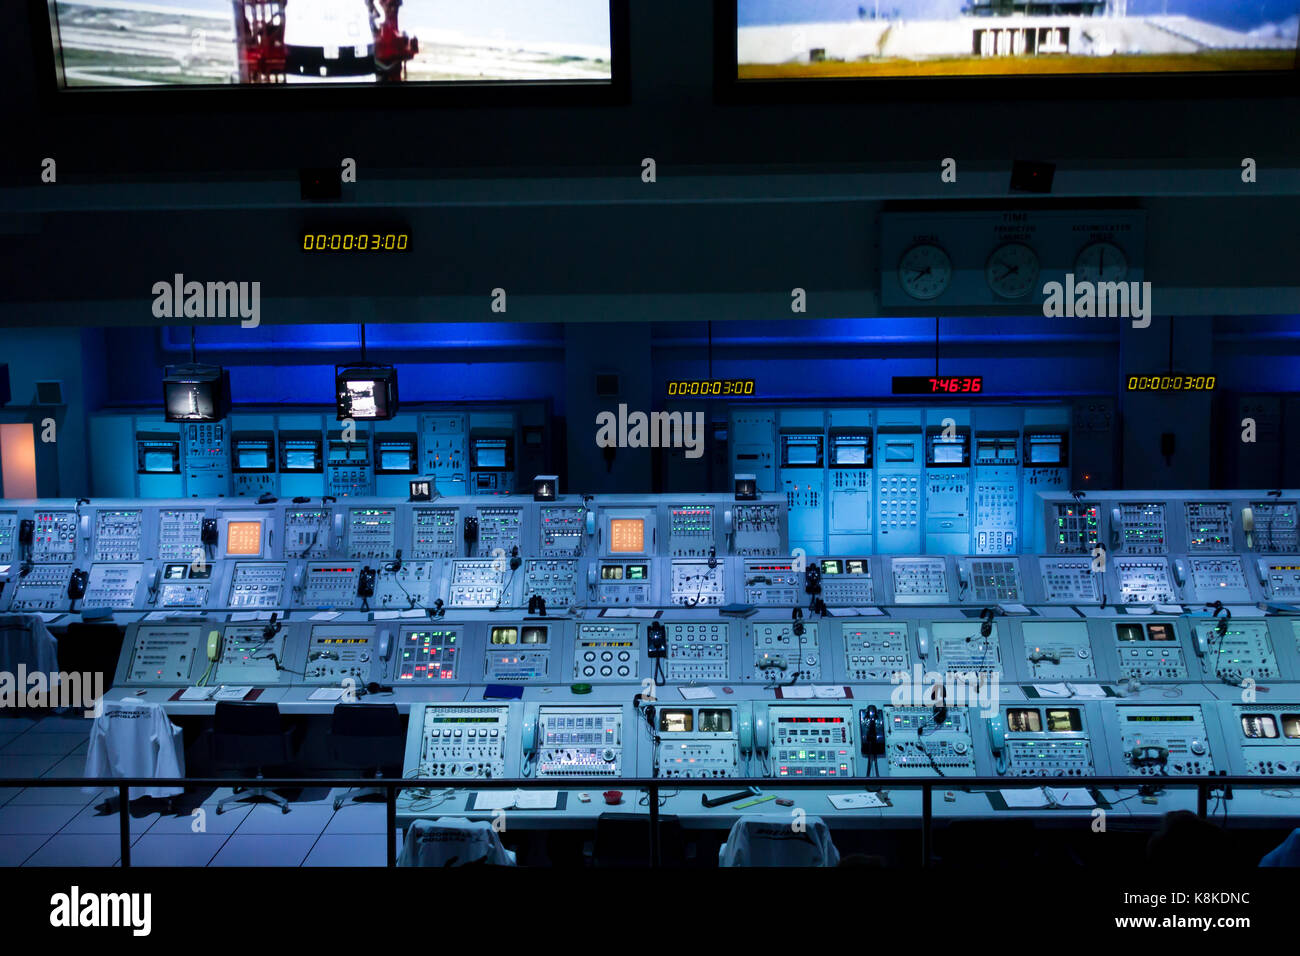 Actual Apollo Mission Control consoles on display in the Apollo/Saturn V Center at Kennedy Space Center - Stock Image